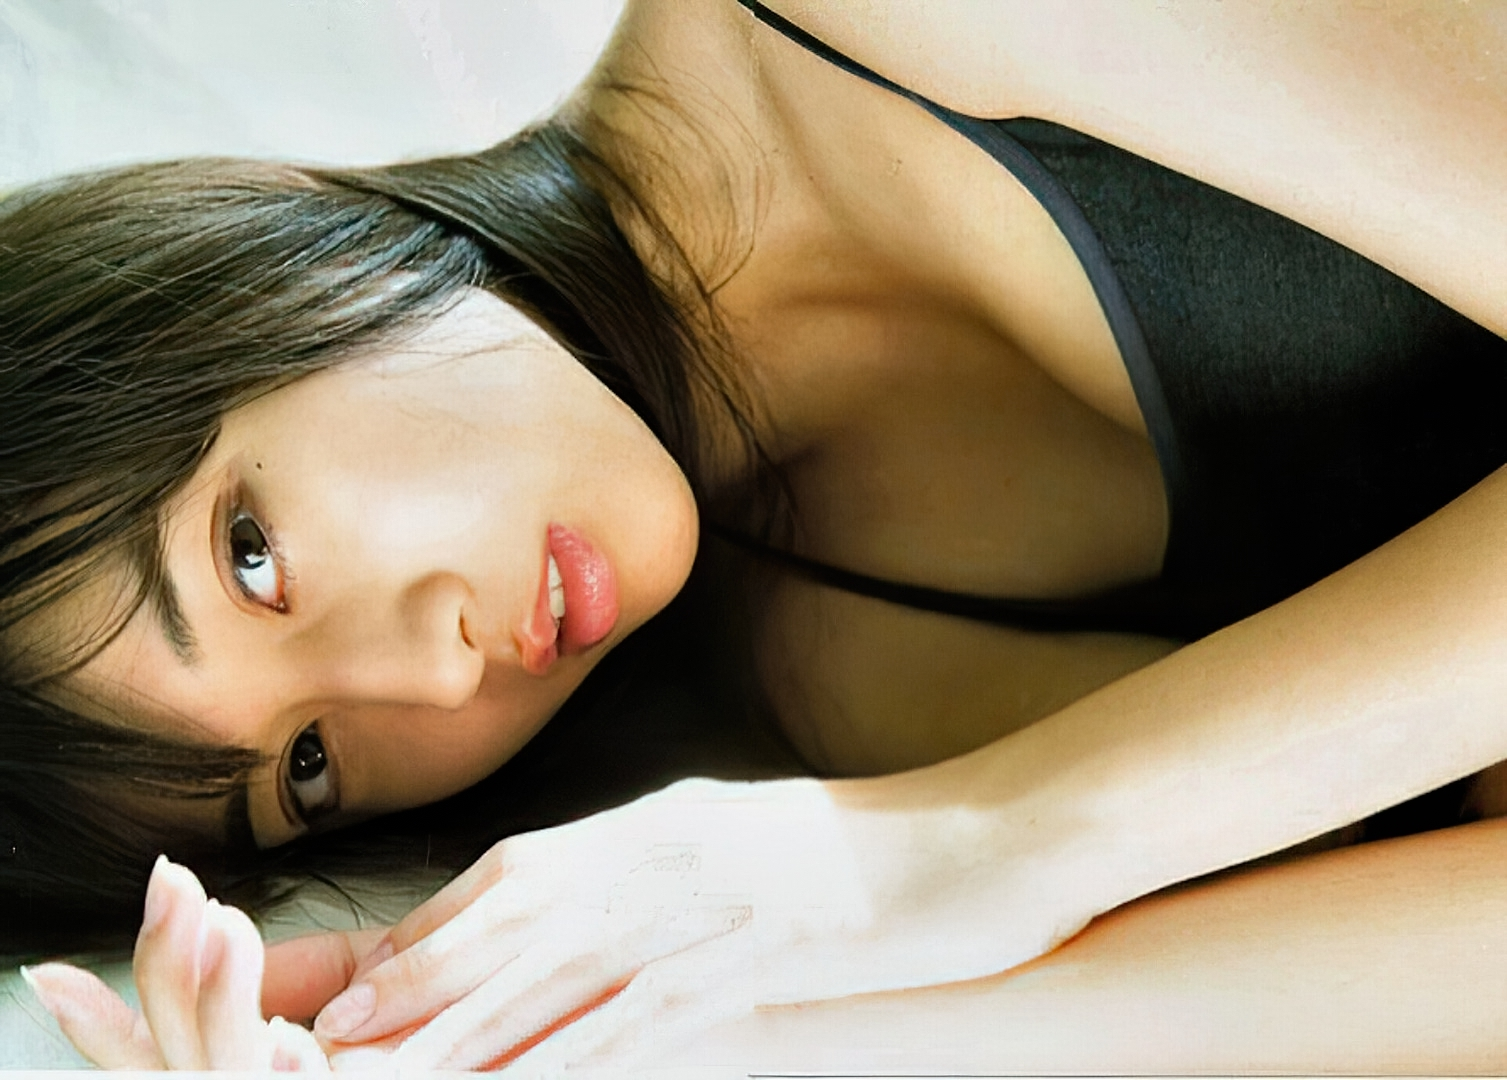 One beautiful girl She is 17 years old and a senior in high school MARIE MAKINO085